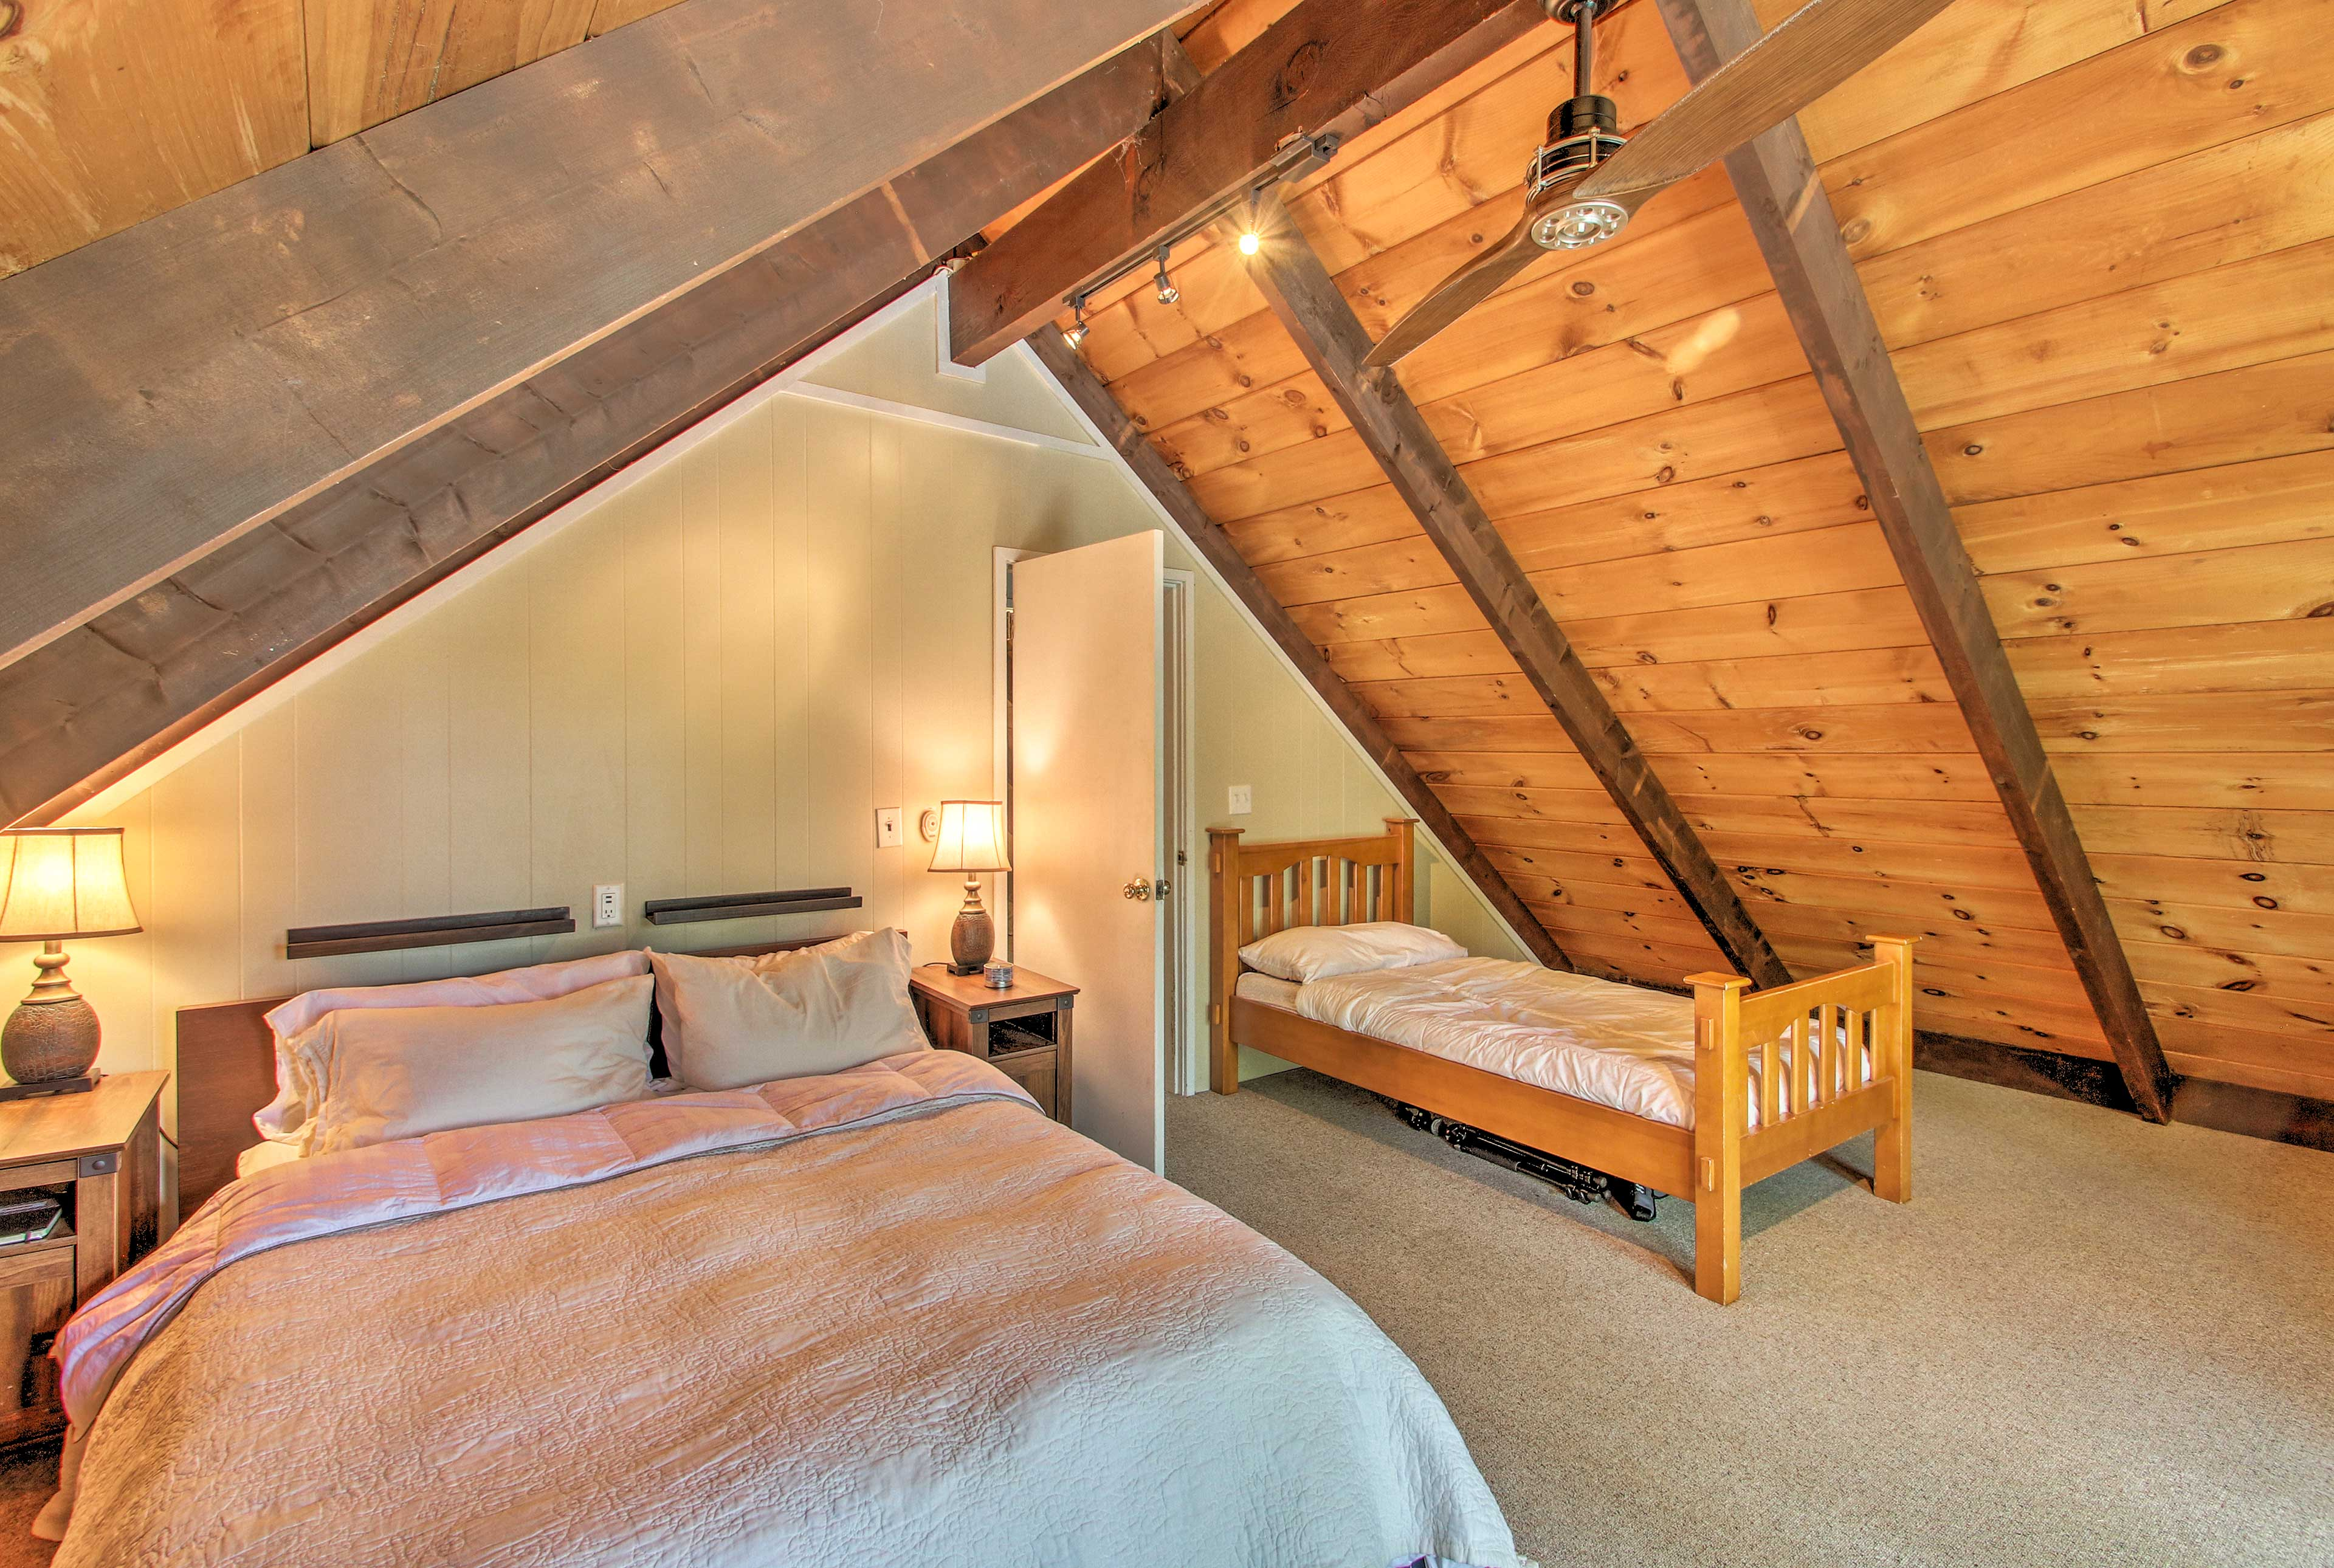 Curl up in the queen-sized bed and let the little one take the twin.